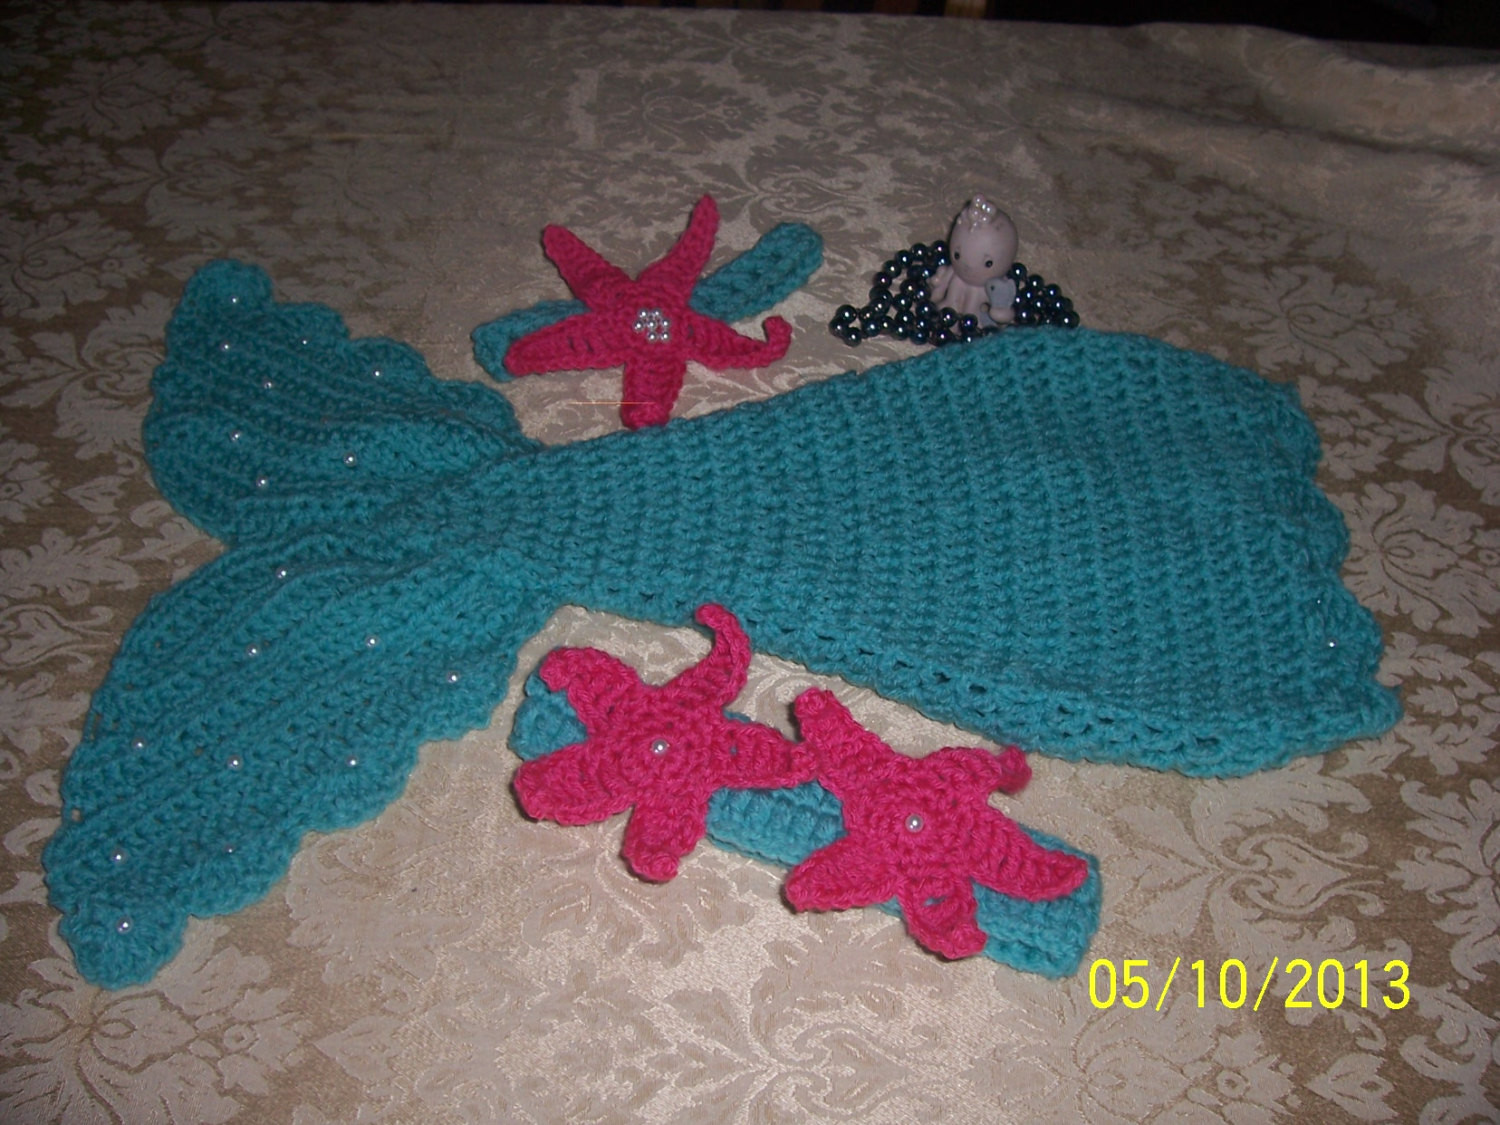 Baby Mermaid Tail Crochet Pattern Inspirational Crochet Baby Mermaid Patternincludes Starfish and Shell top Of New 45 Photos Baby Mermaid Tail Crochet Pattern